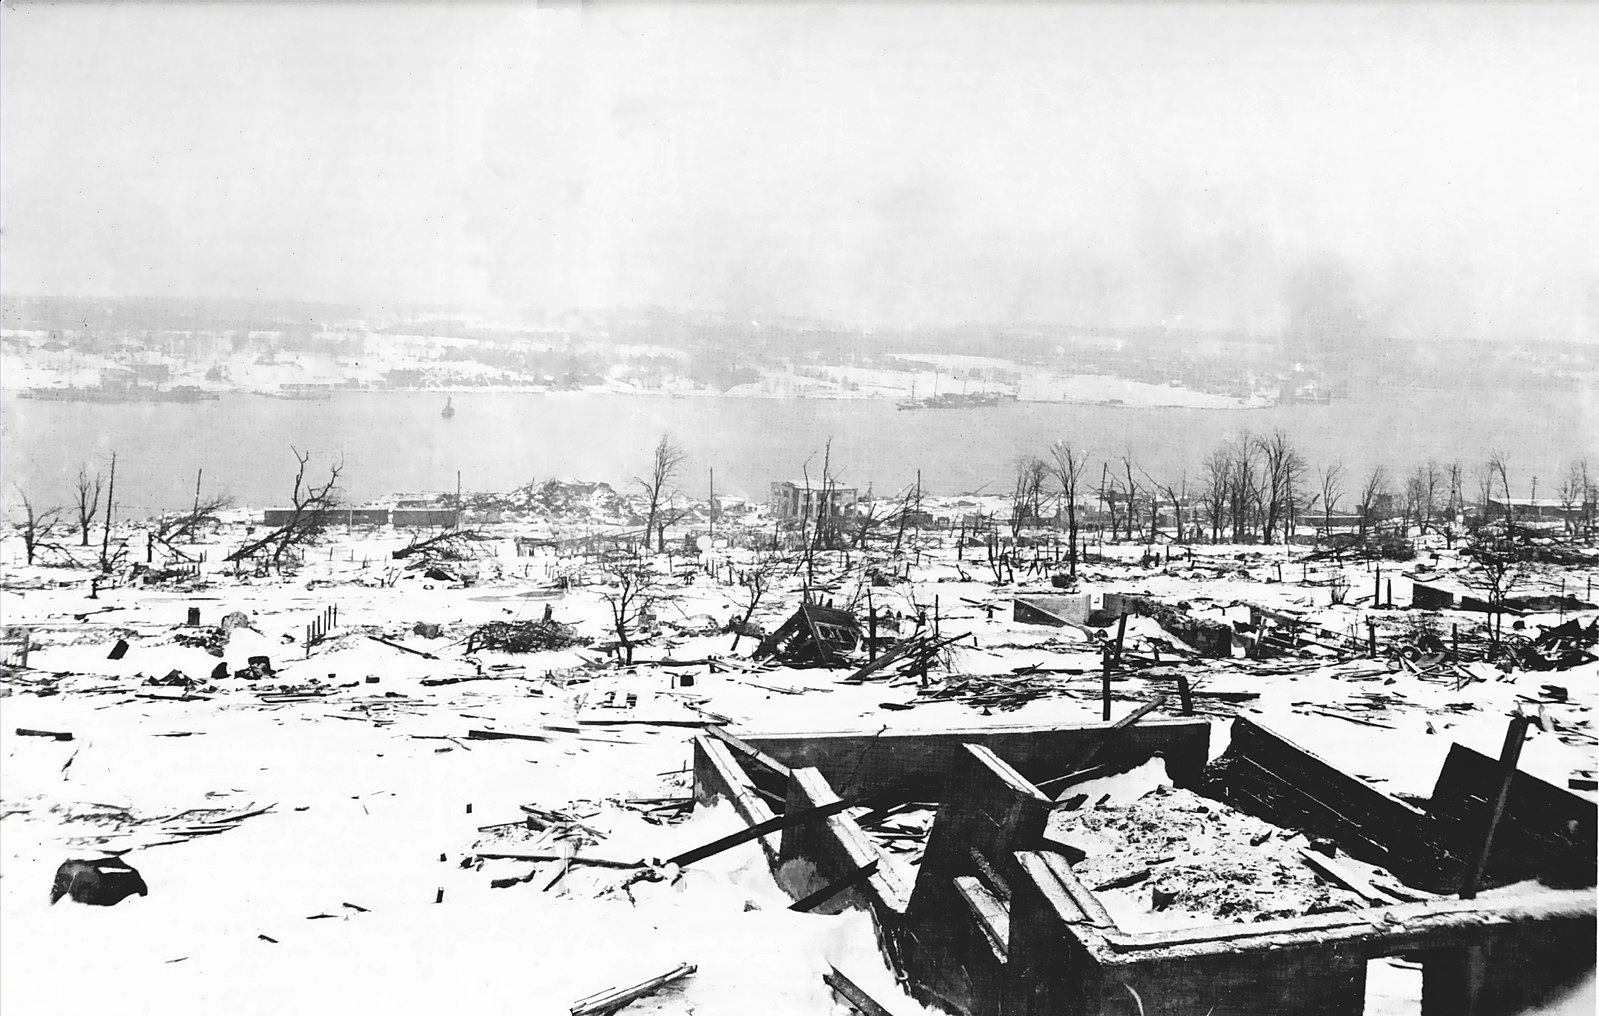 an important moment in the past of canada a history of the halifax explosion The halifax explosion was the largest man-made explosion until the first atomic bomb was detonated over hiroshima, japan, in 1945 view from the waterfront looking west from the ruins of the sugar refinery across the obliterated richmond district several days after the explosion.